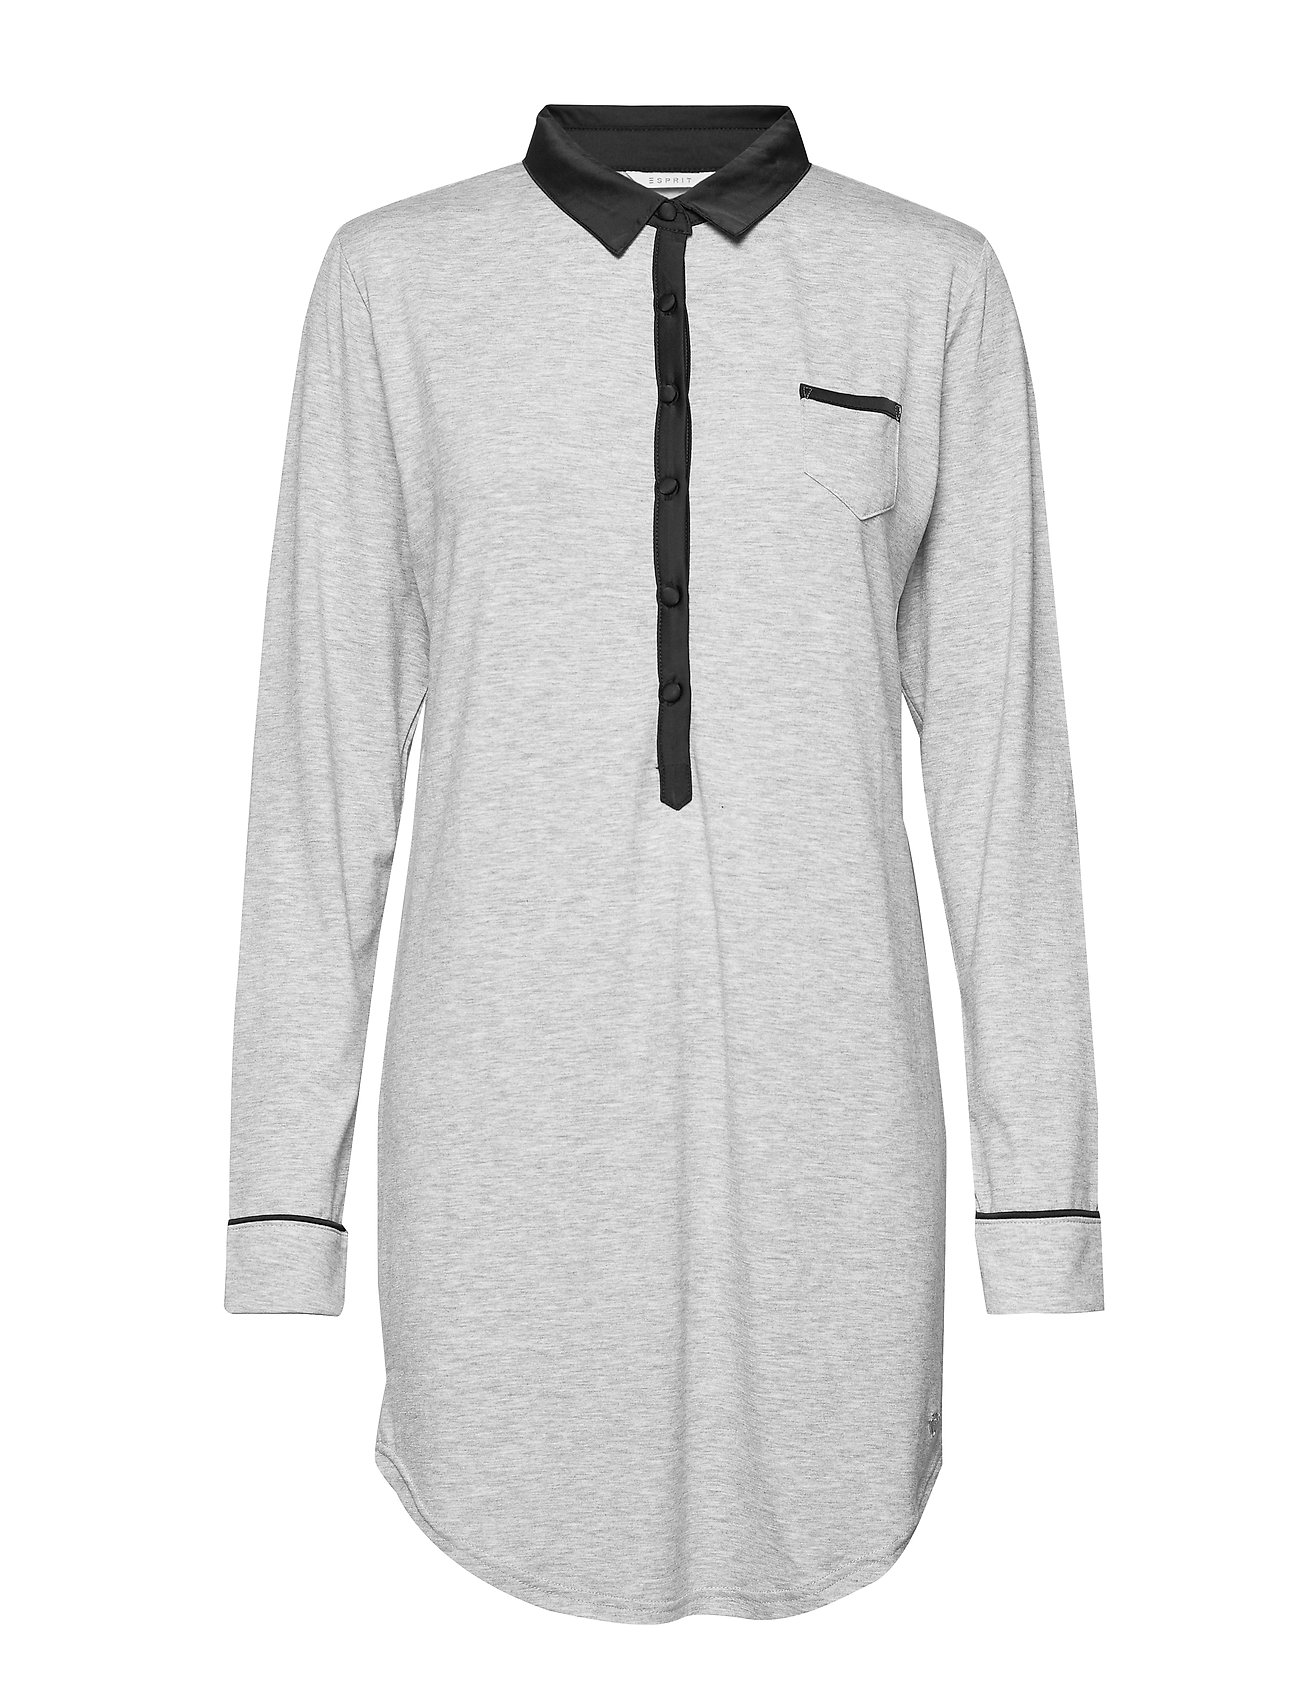 Esprit Bodywear Women Nightshirts - MEDIUM GREY